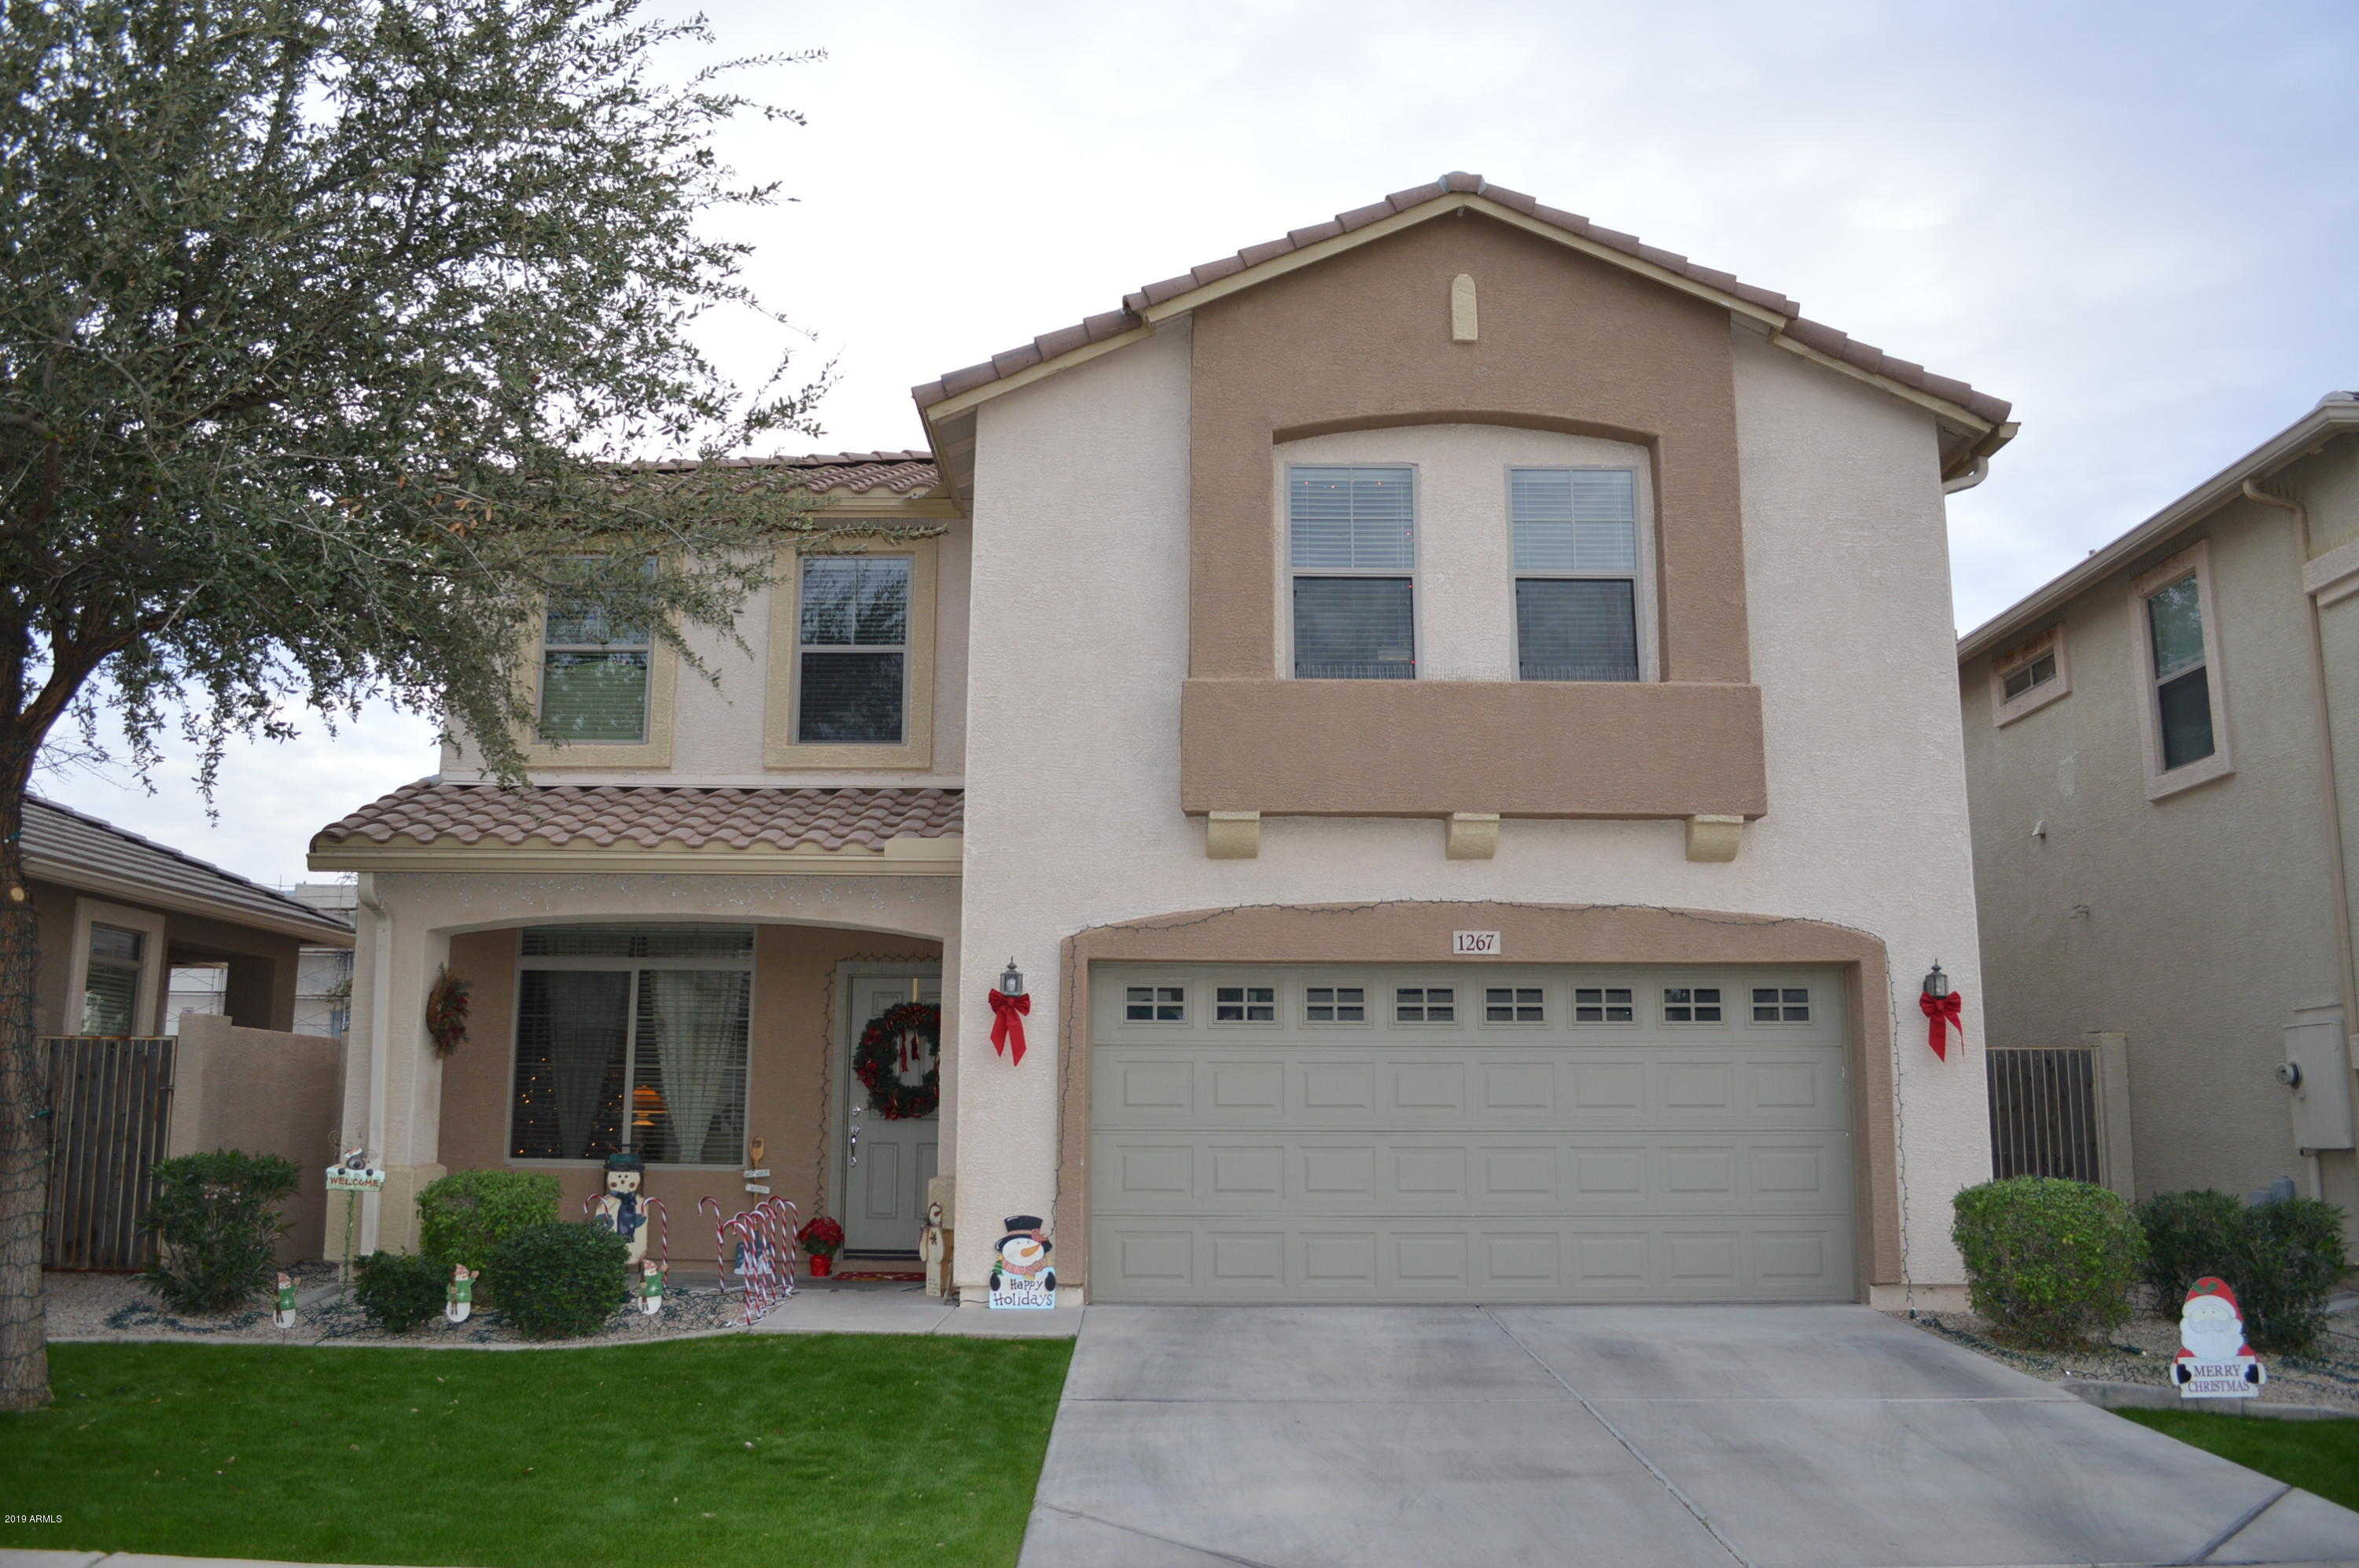 $280,000 - 4Br/3Ba - Home for Sale in La Paloma, Chandler